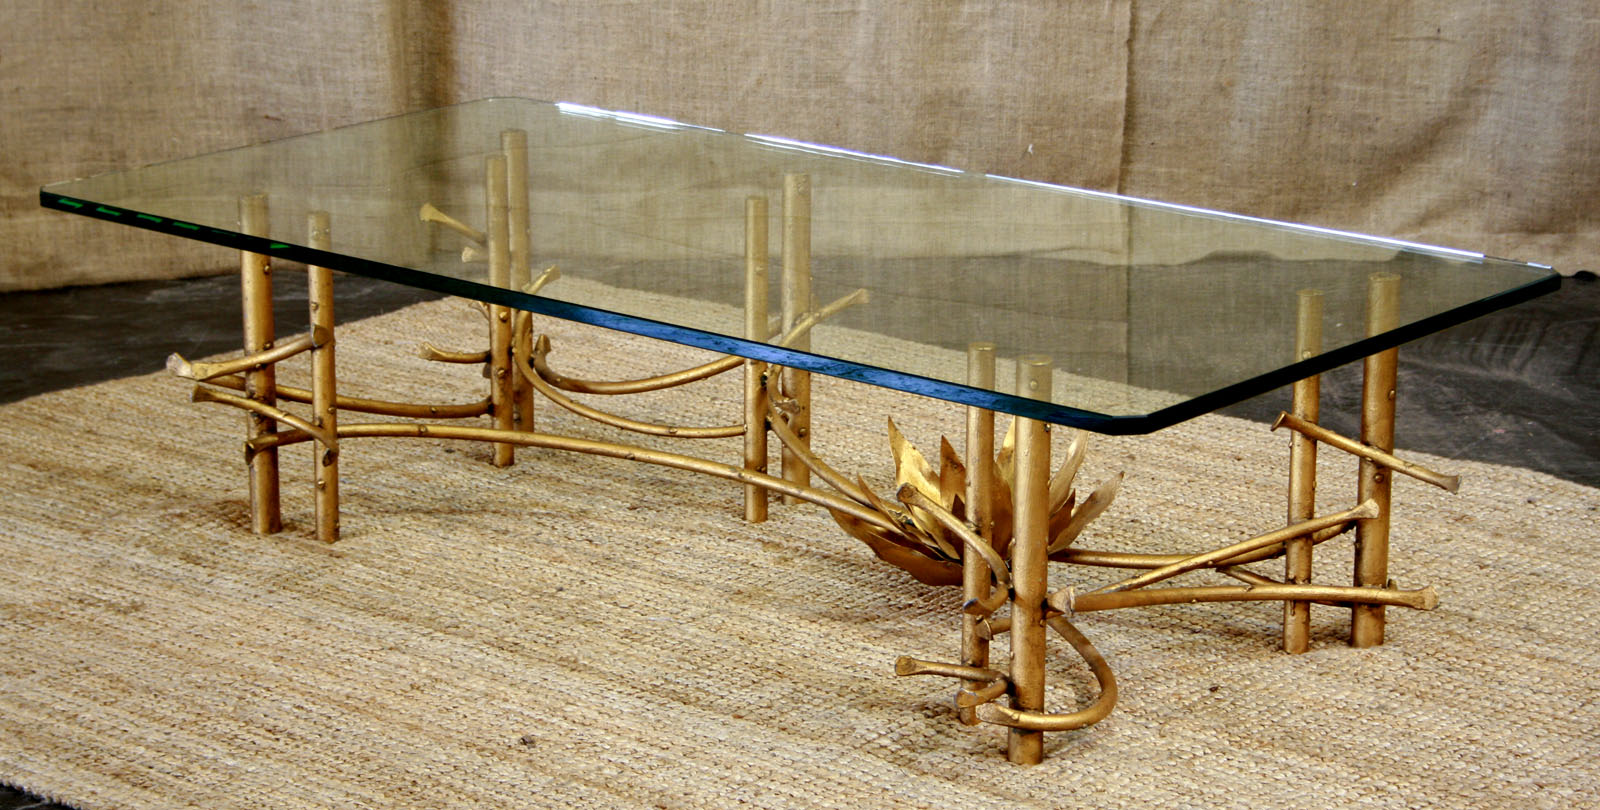 Bamboo Glass Coffee Table Complete Your Lounge Room With The Perfect Coffee Table (View 3 of 10)